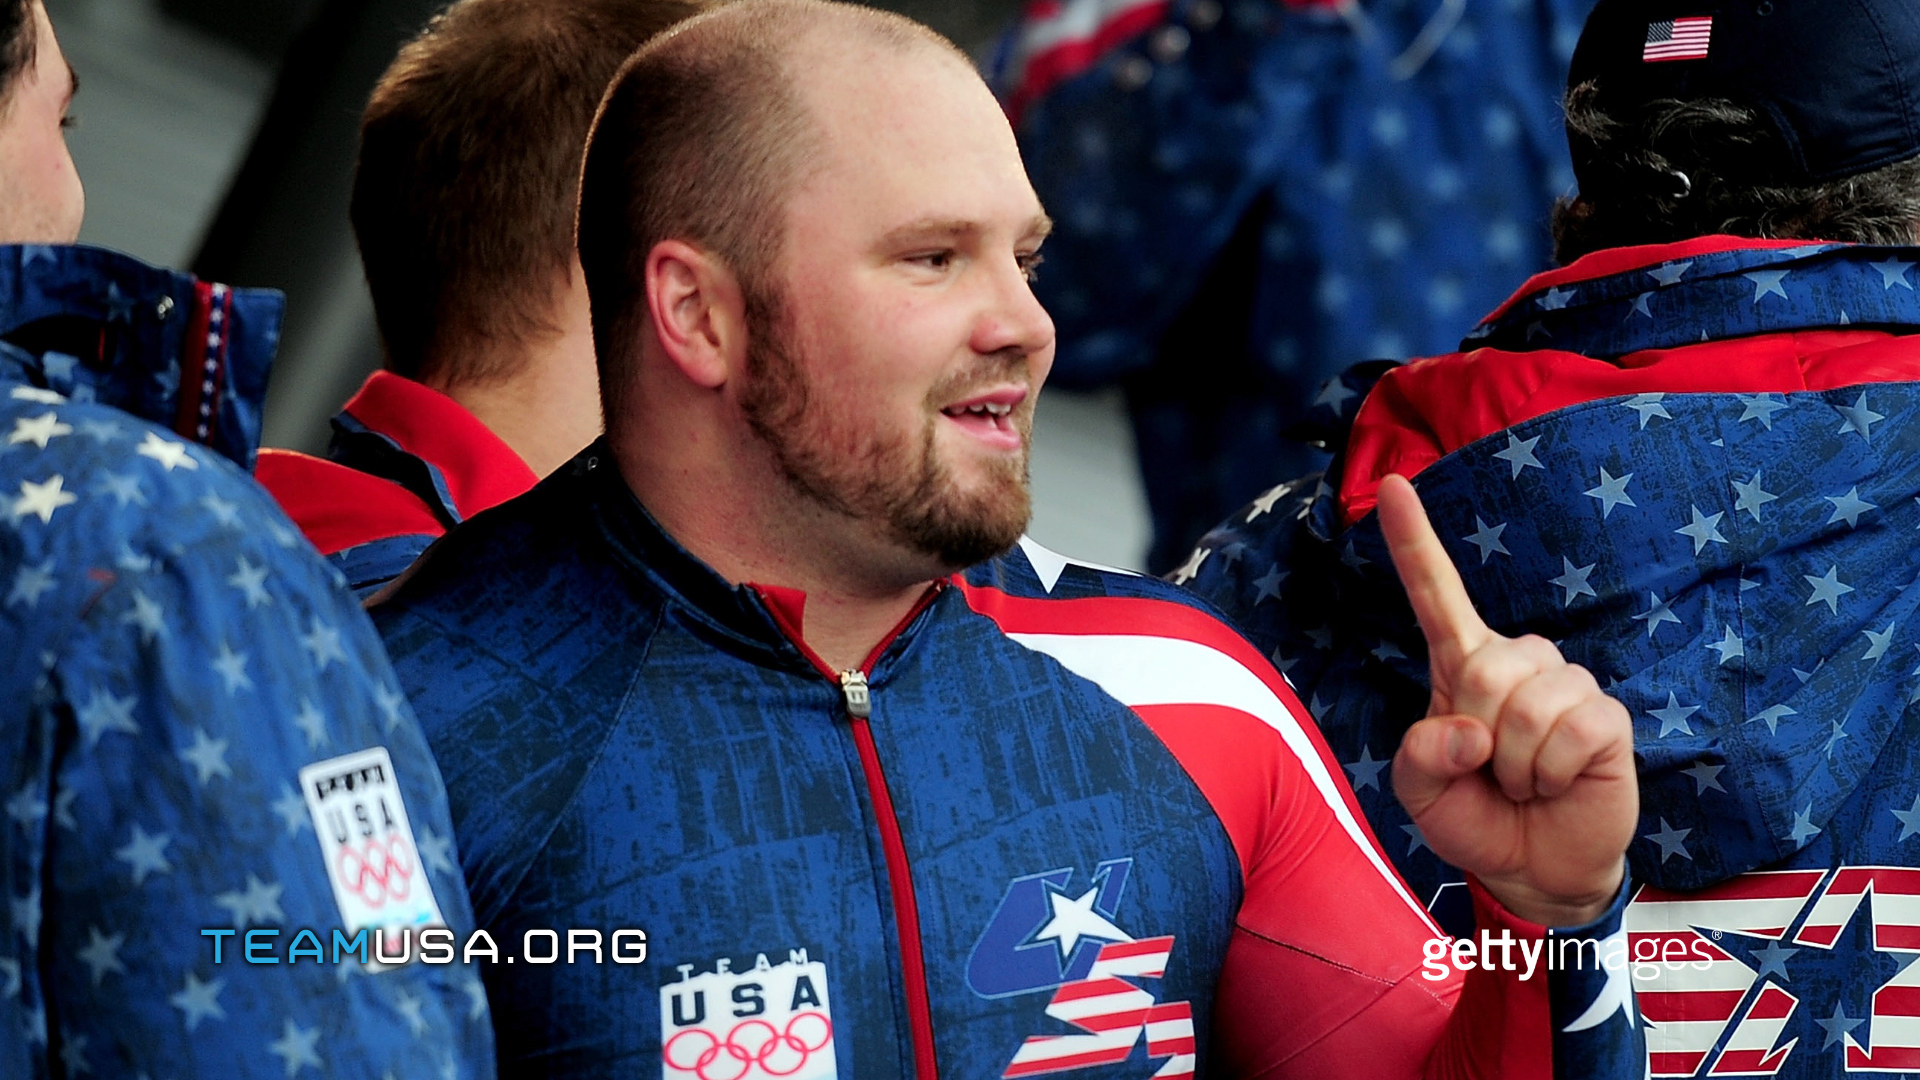 Olympic bobsled legend Steven Holcomb dies at 37